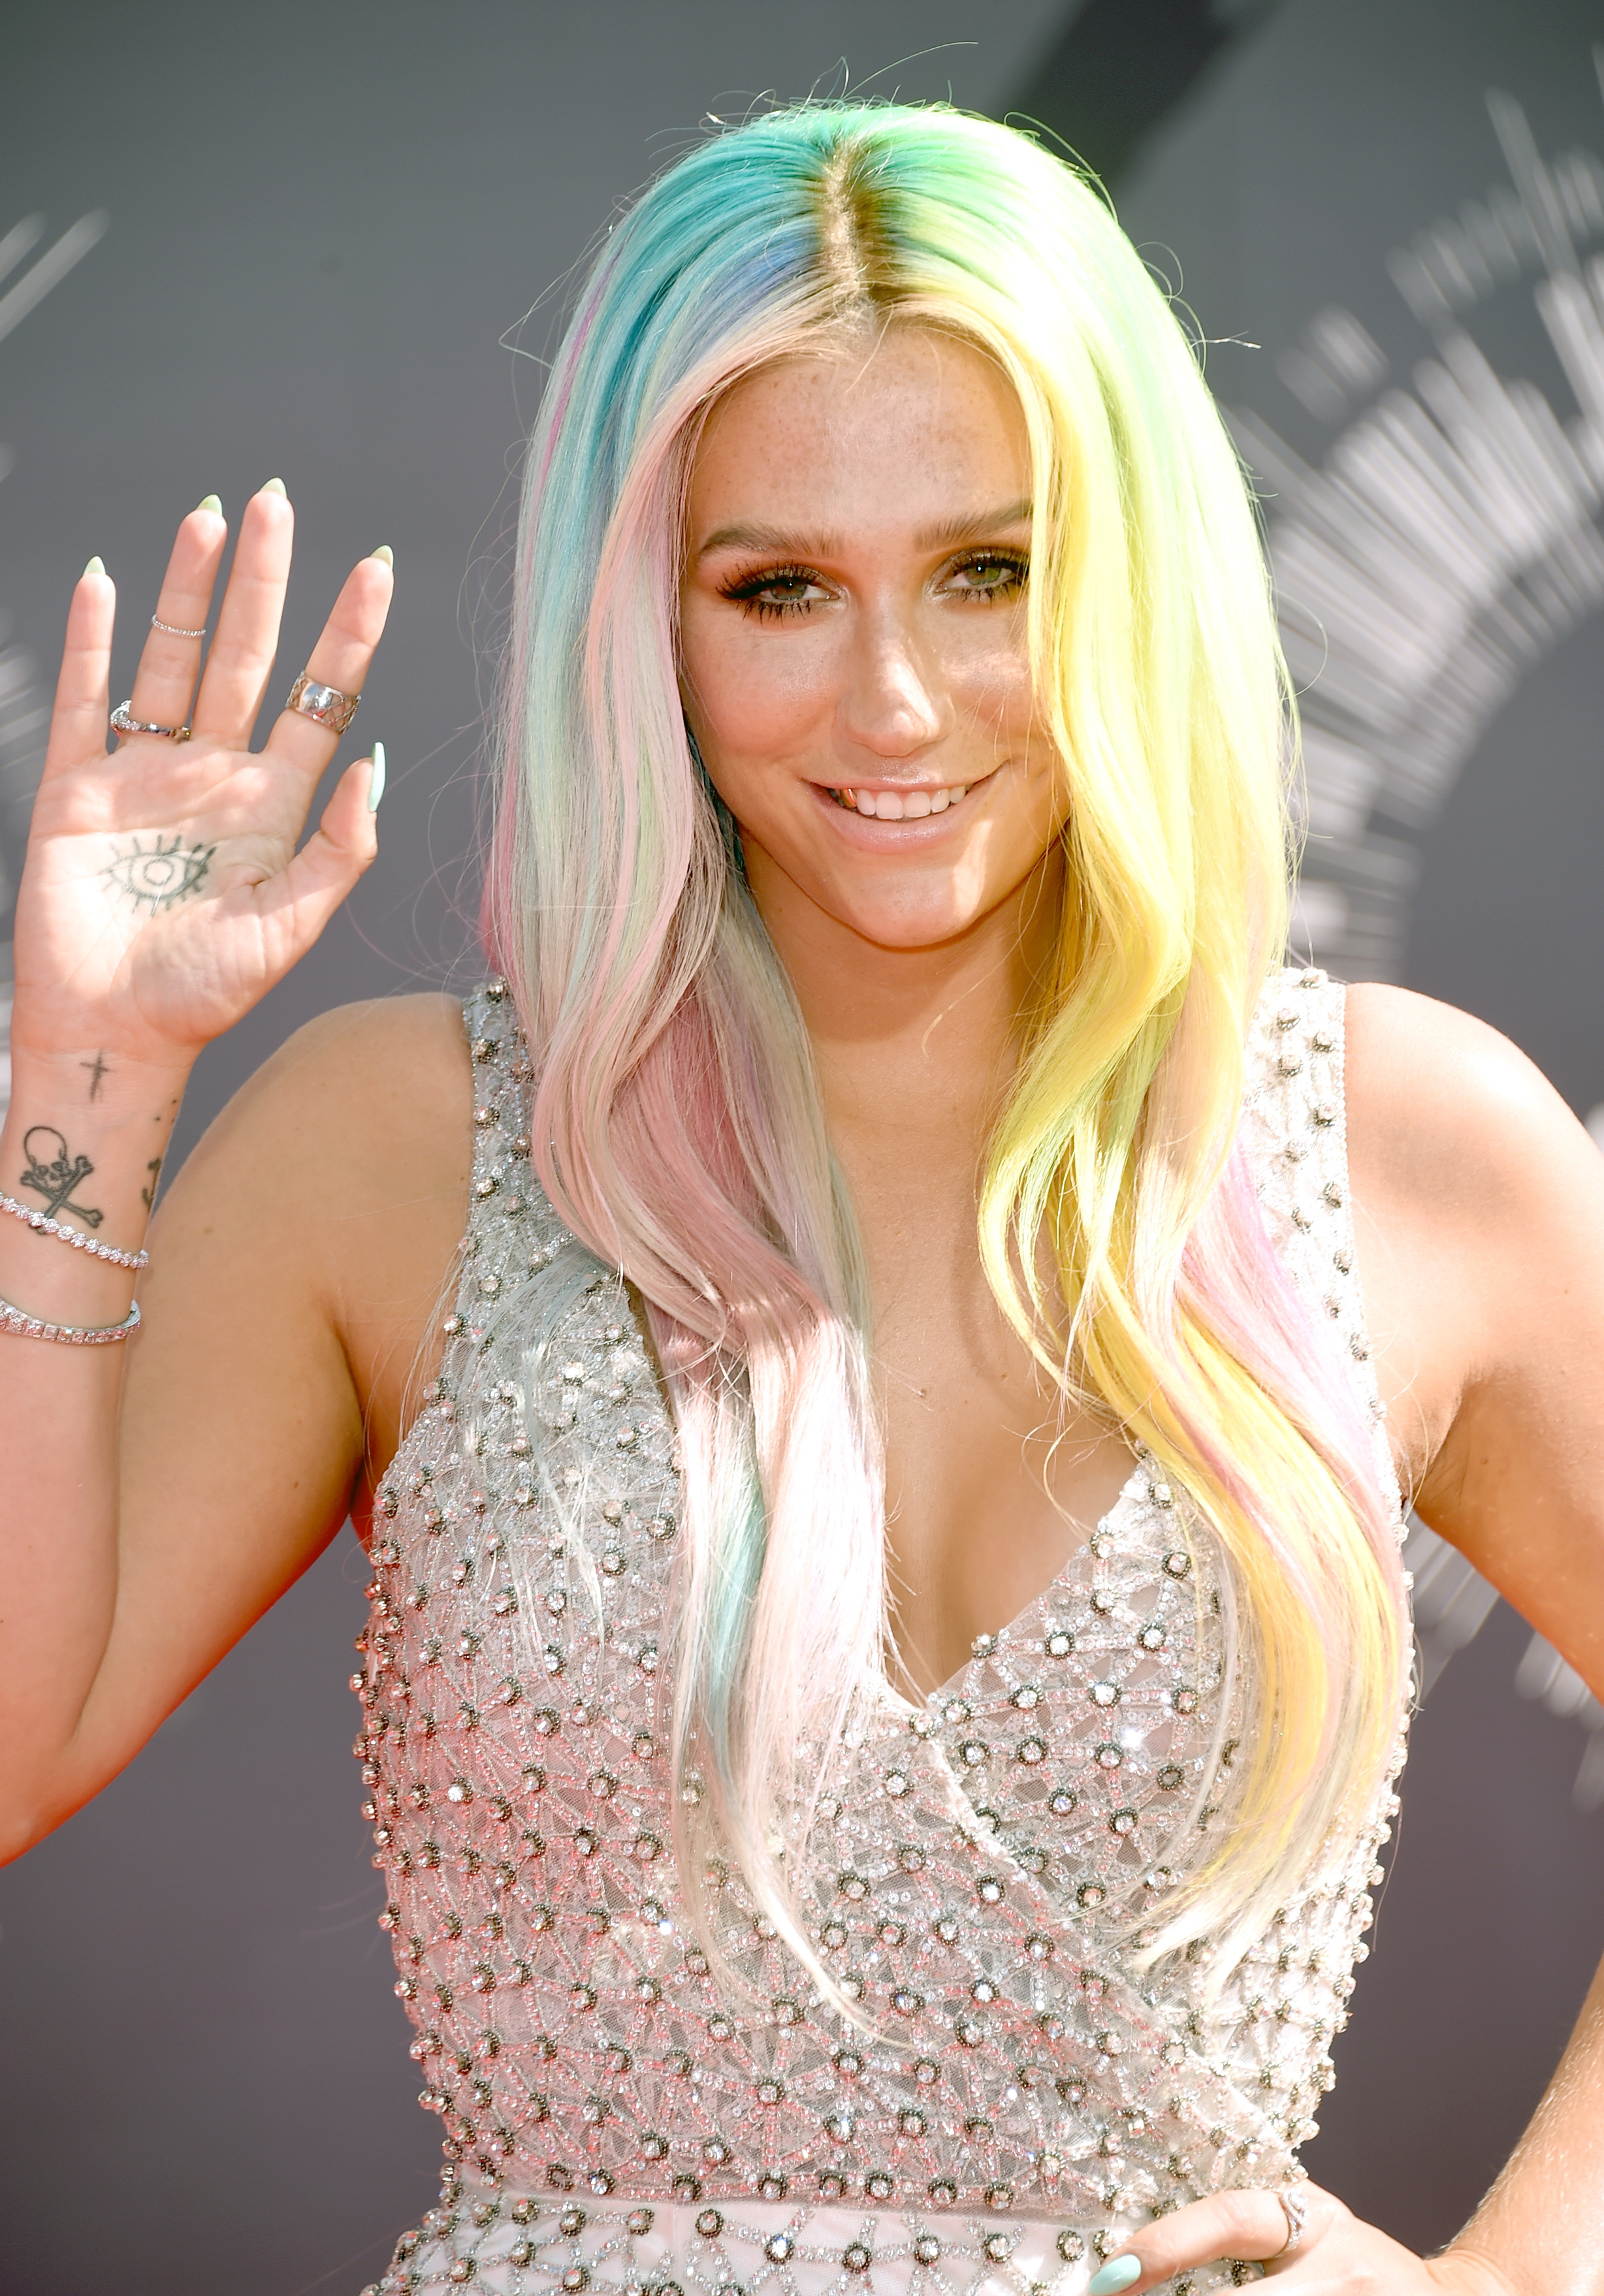 Ke$ha attends the 2014 MTV Video Music Awards at The Forum on August 24, 2014 in Inglewood, California.